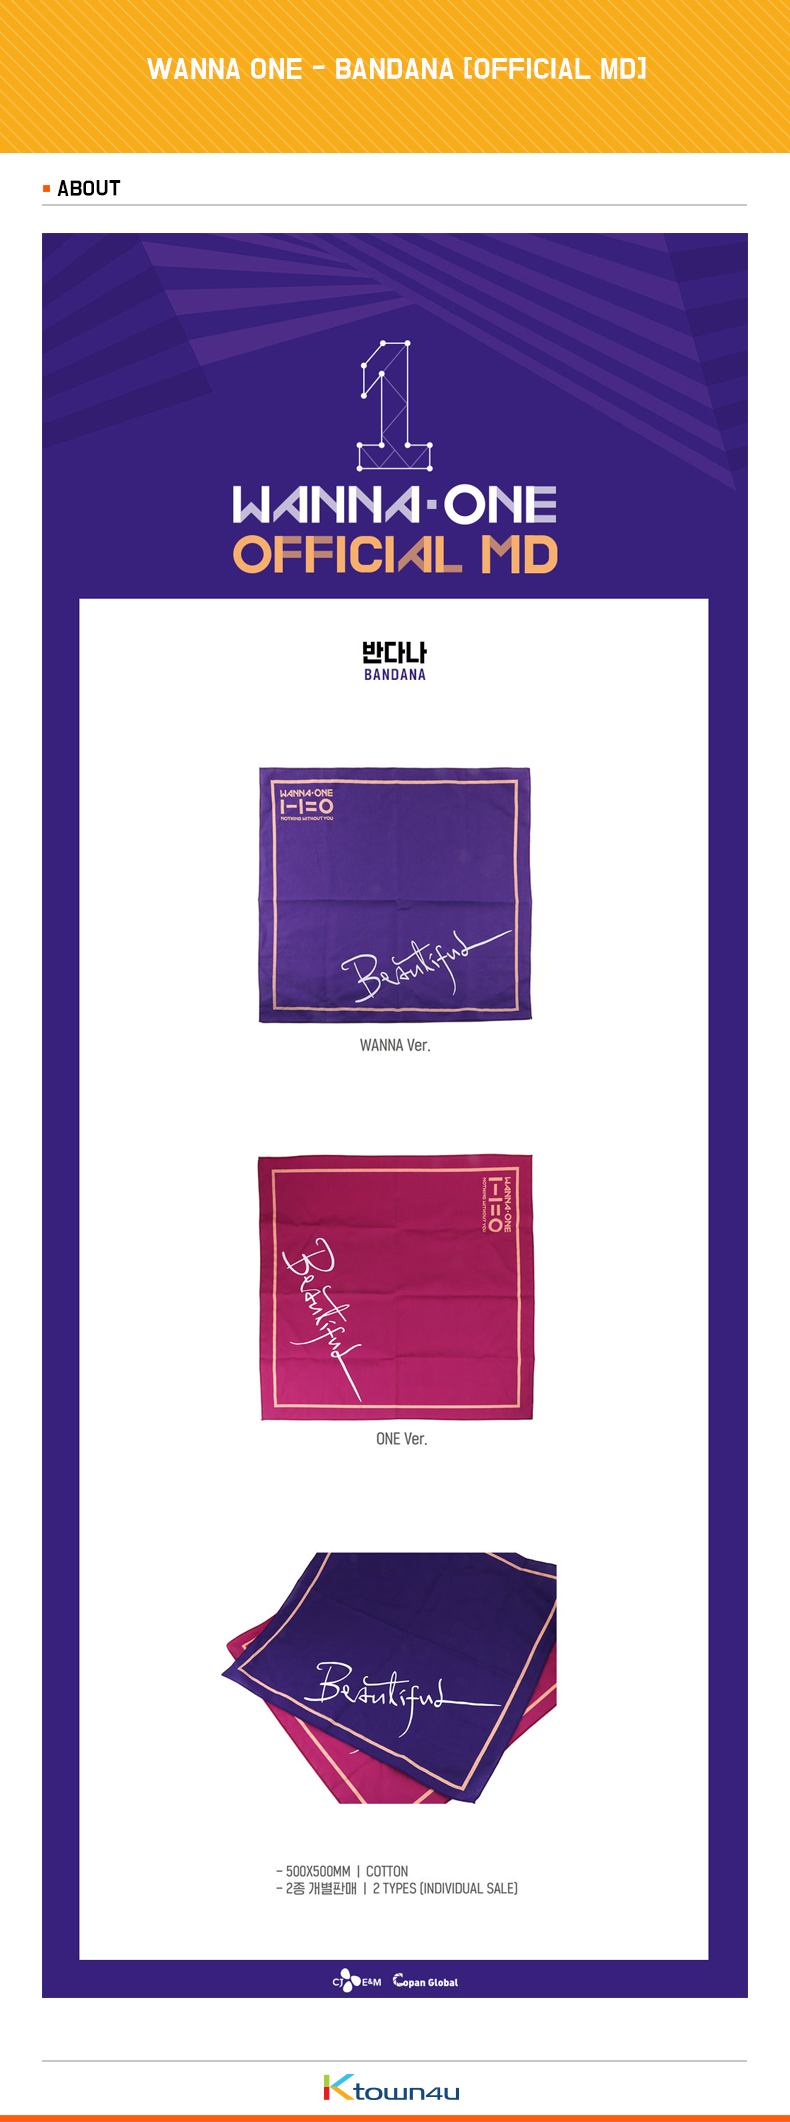 WANNA ONE - BANDANA [OFFICIAL MD]